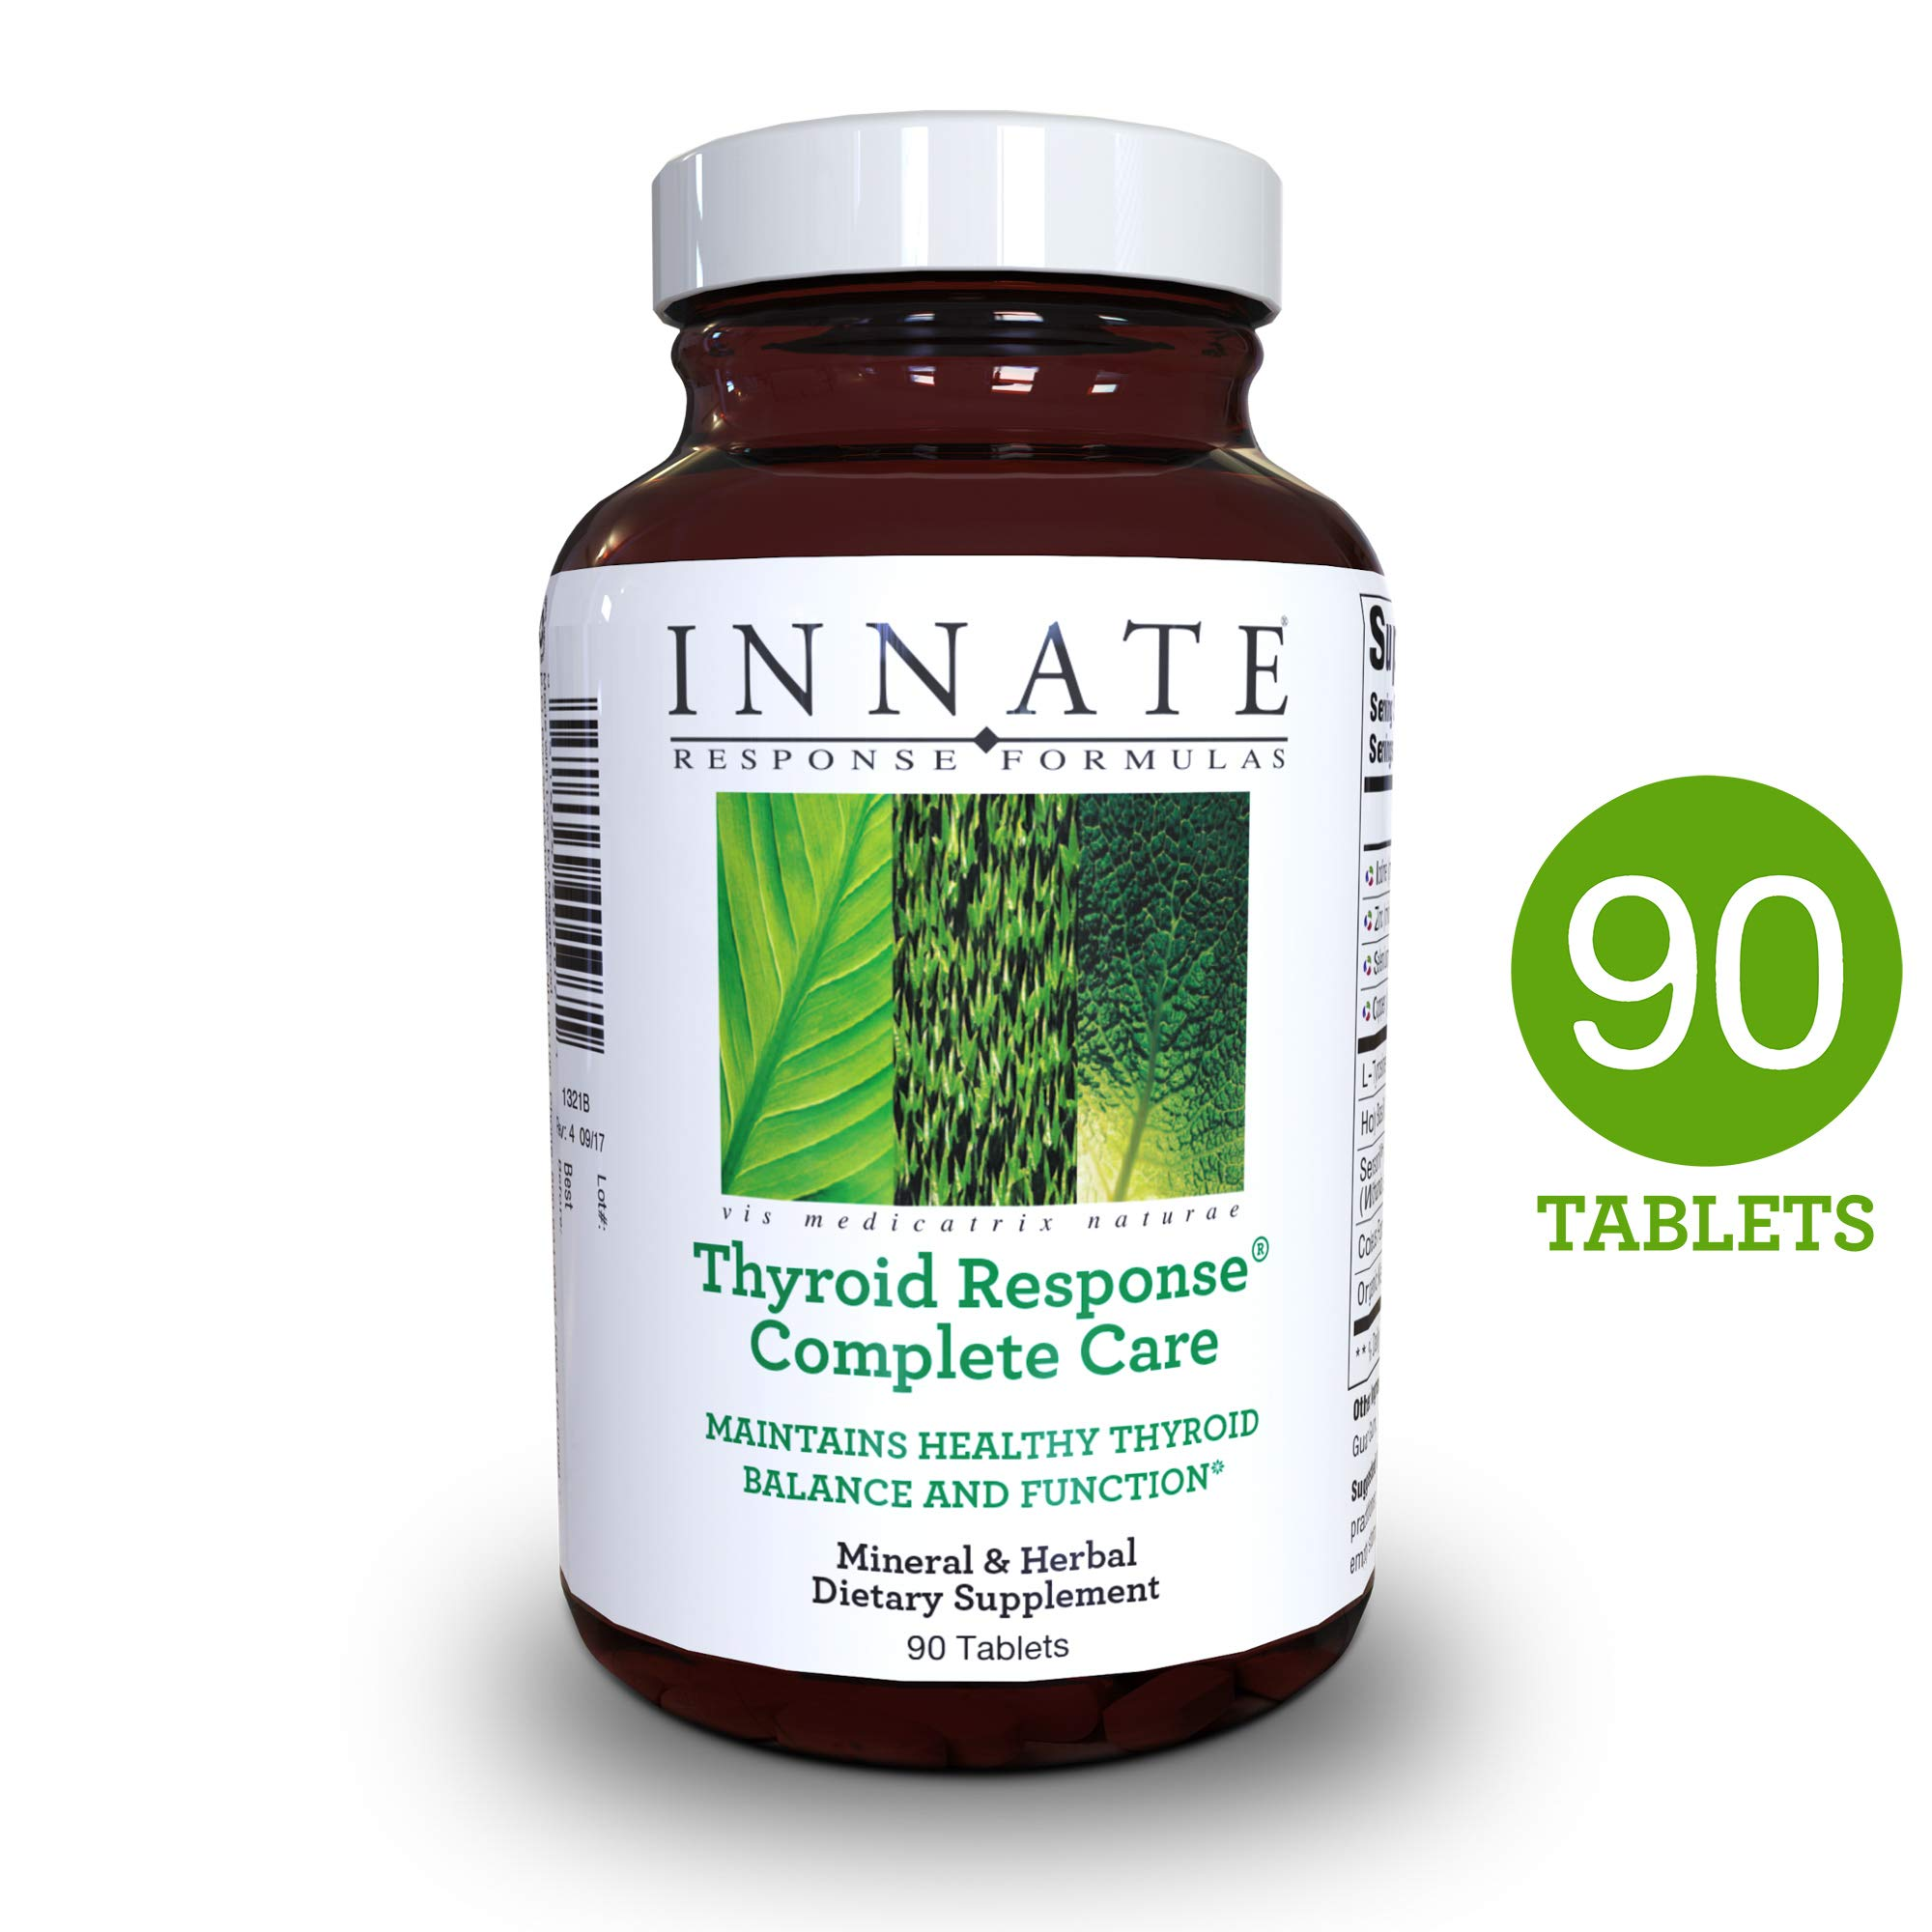 INNATE Response Formulas - Thyroid Response Complete Care, Supports Healthy Thyroid Function, 90 Tablets by INNATE Response Formulas